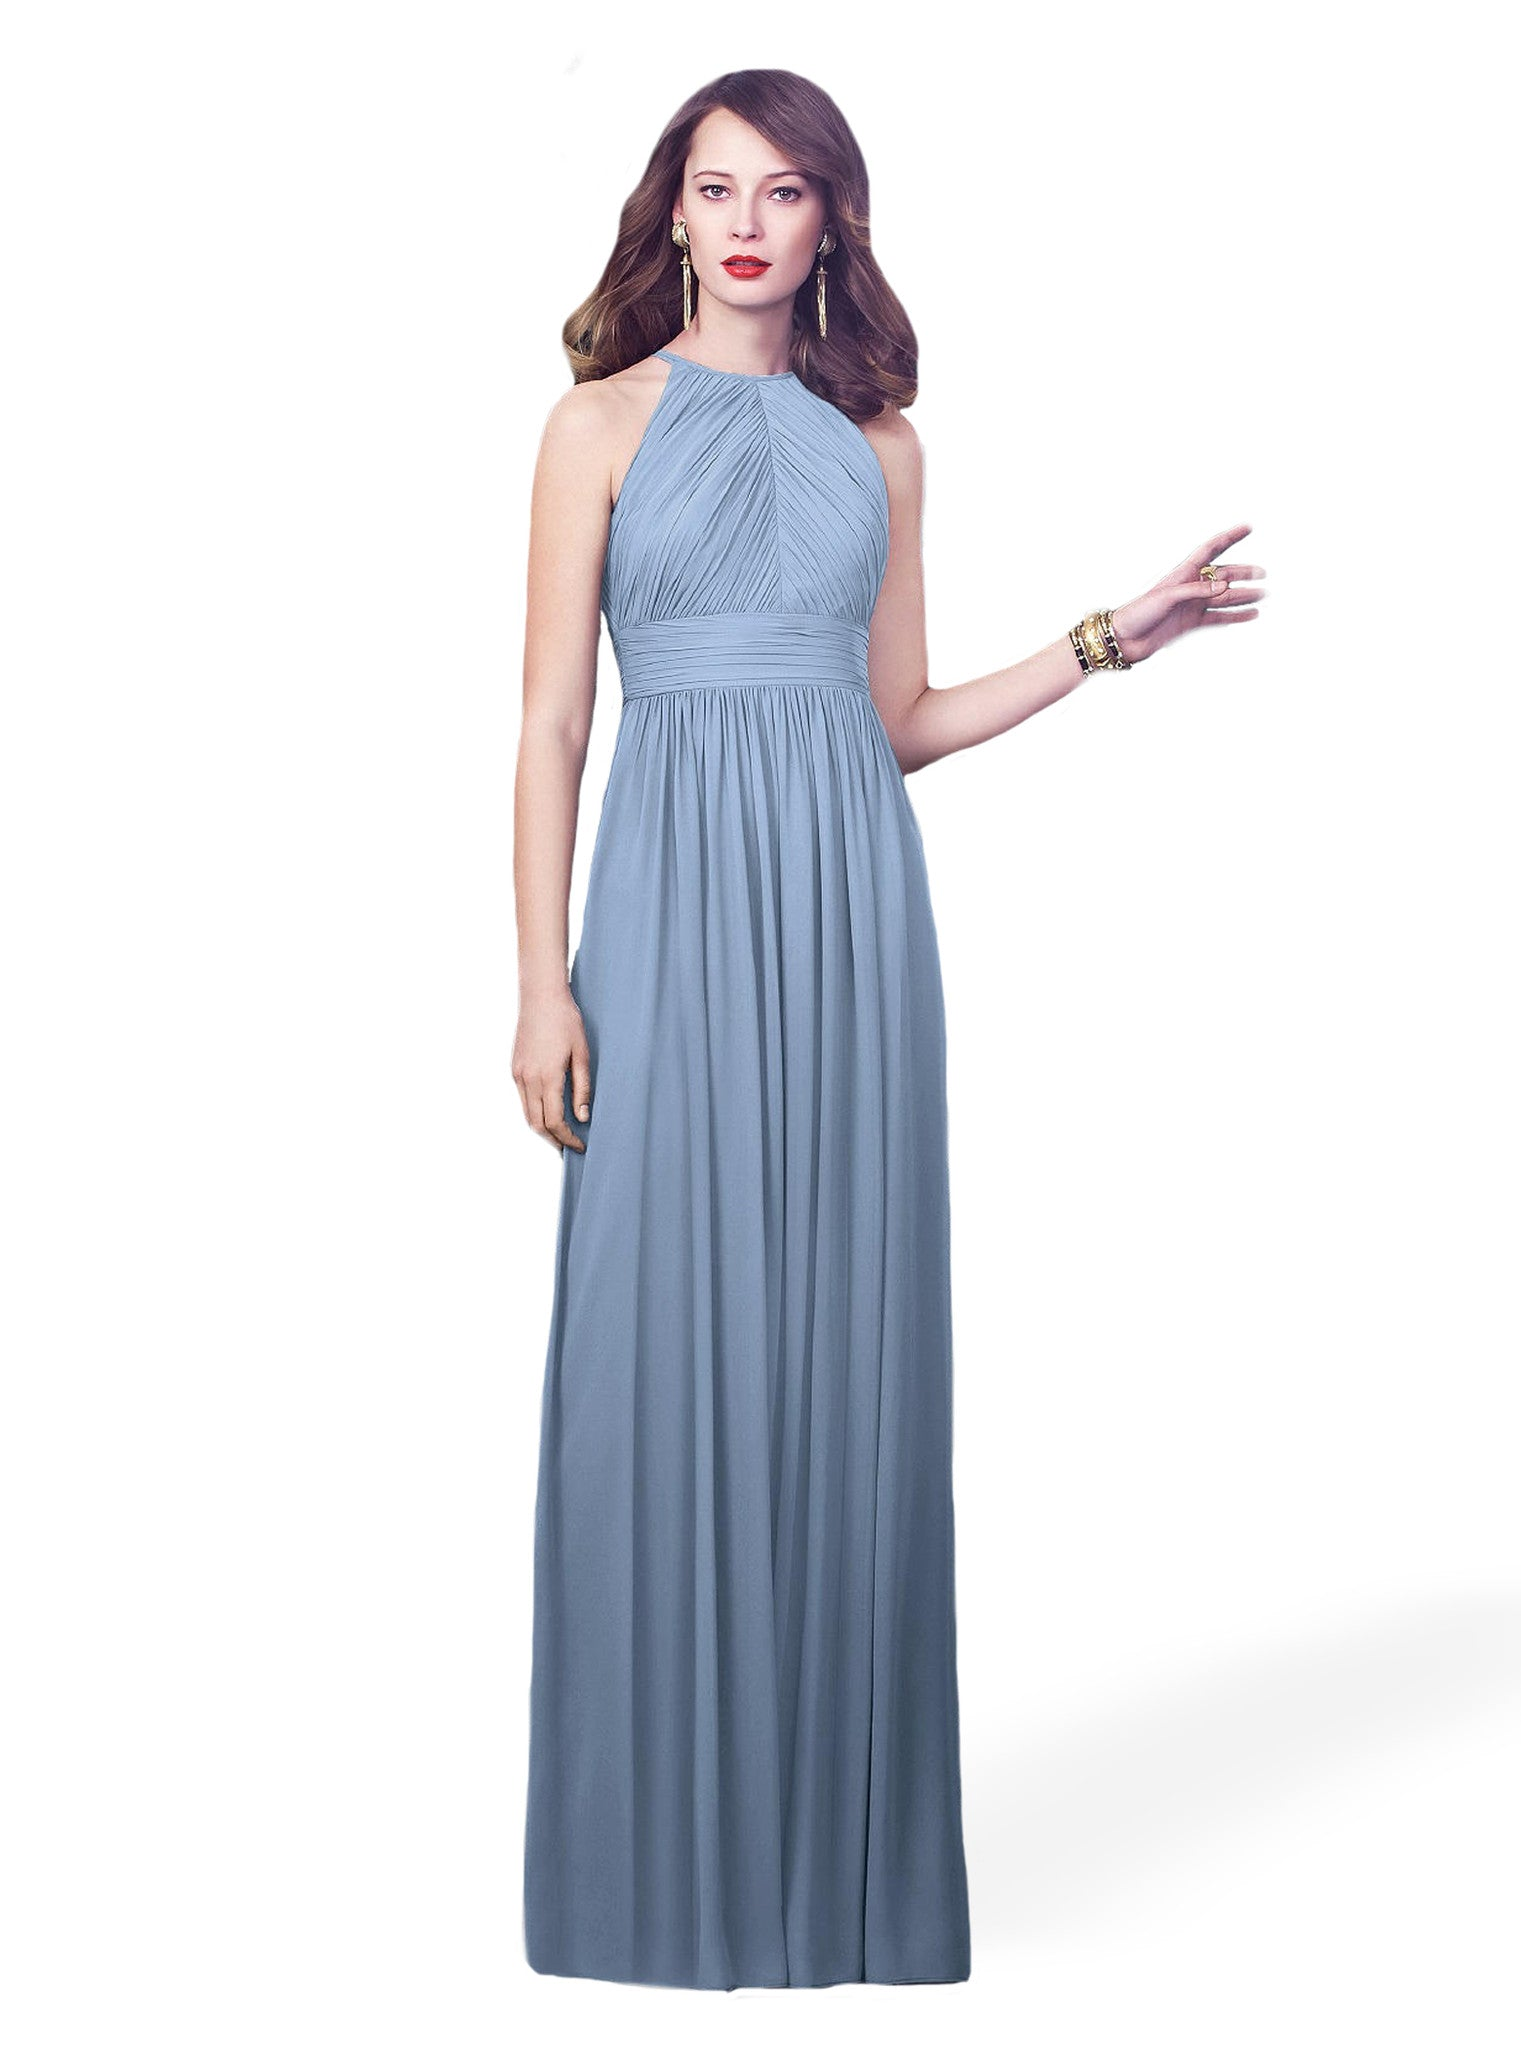 Dessy 2918 bridesmaid dress weddings by lo dessy 2918 high neck bridesmaid dress ombrellifo Gallery